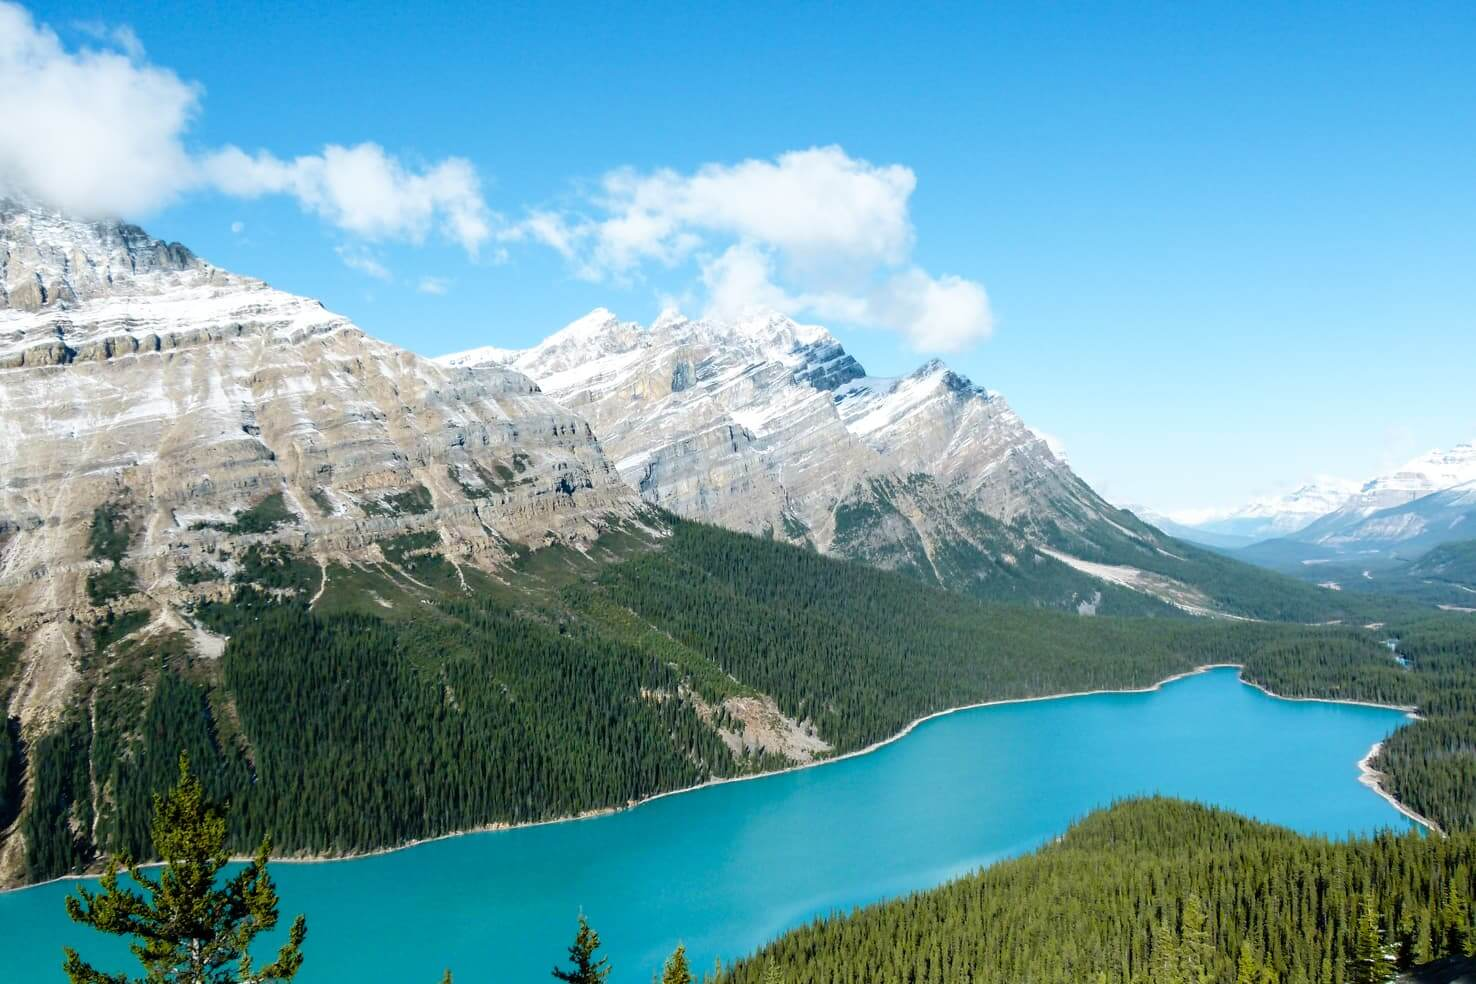 Peyto Lake, Canada - photoshopped or real